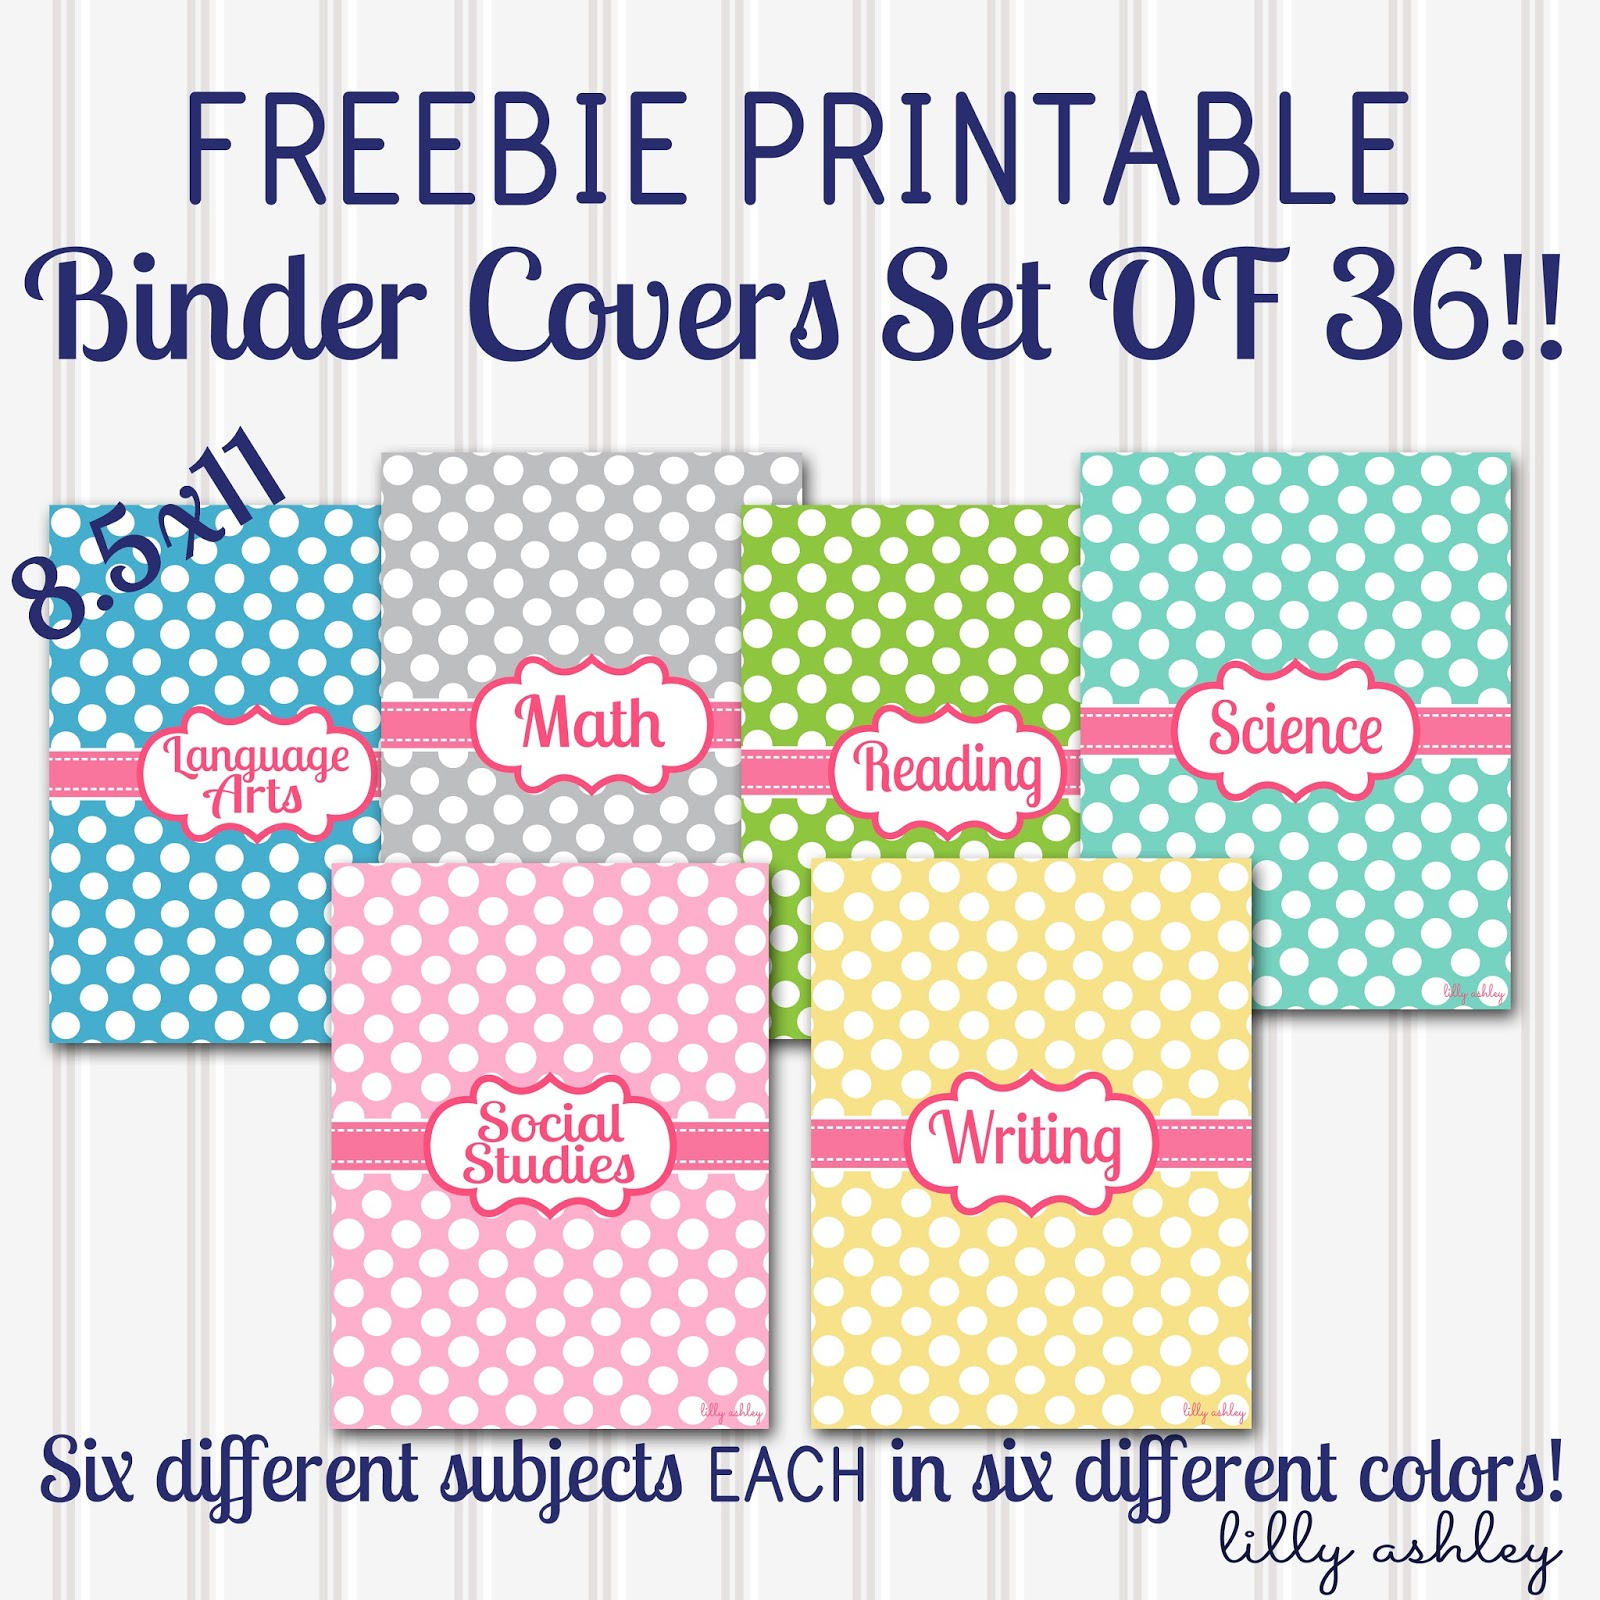 Make It Createlillyashleyfreebie Downloads: Back To School - Free Printable Binder Covers And Spines